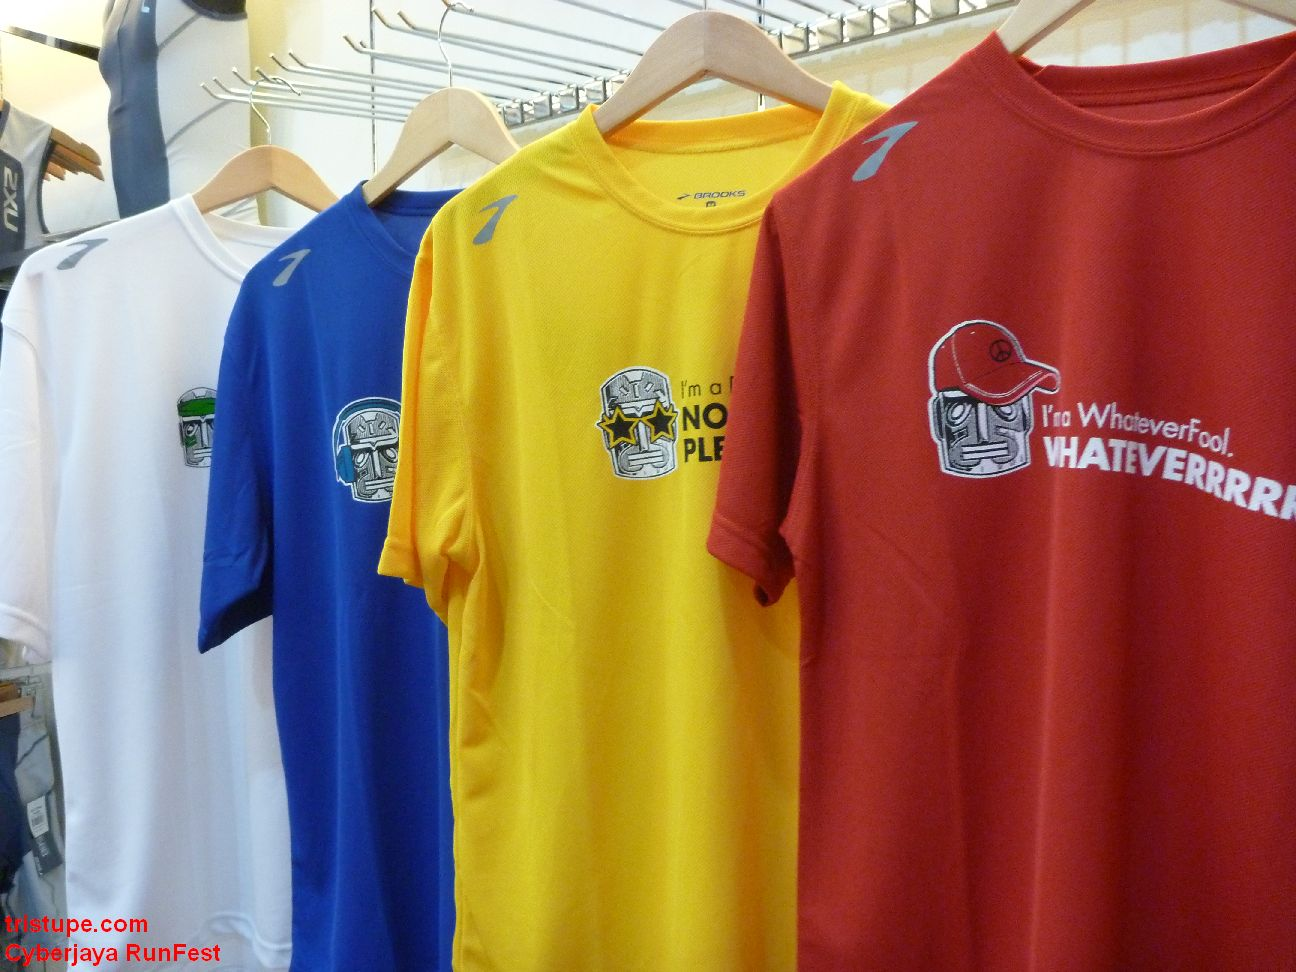 Design t shirt rumah sukan - This Is Also The First Time I Believe That An Organizer Took The Trouble To Make Four Different Type Of Design And Uses Four Different Color To Give The